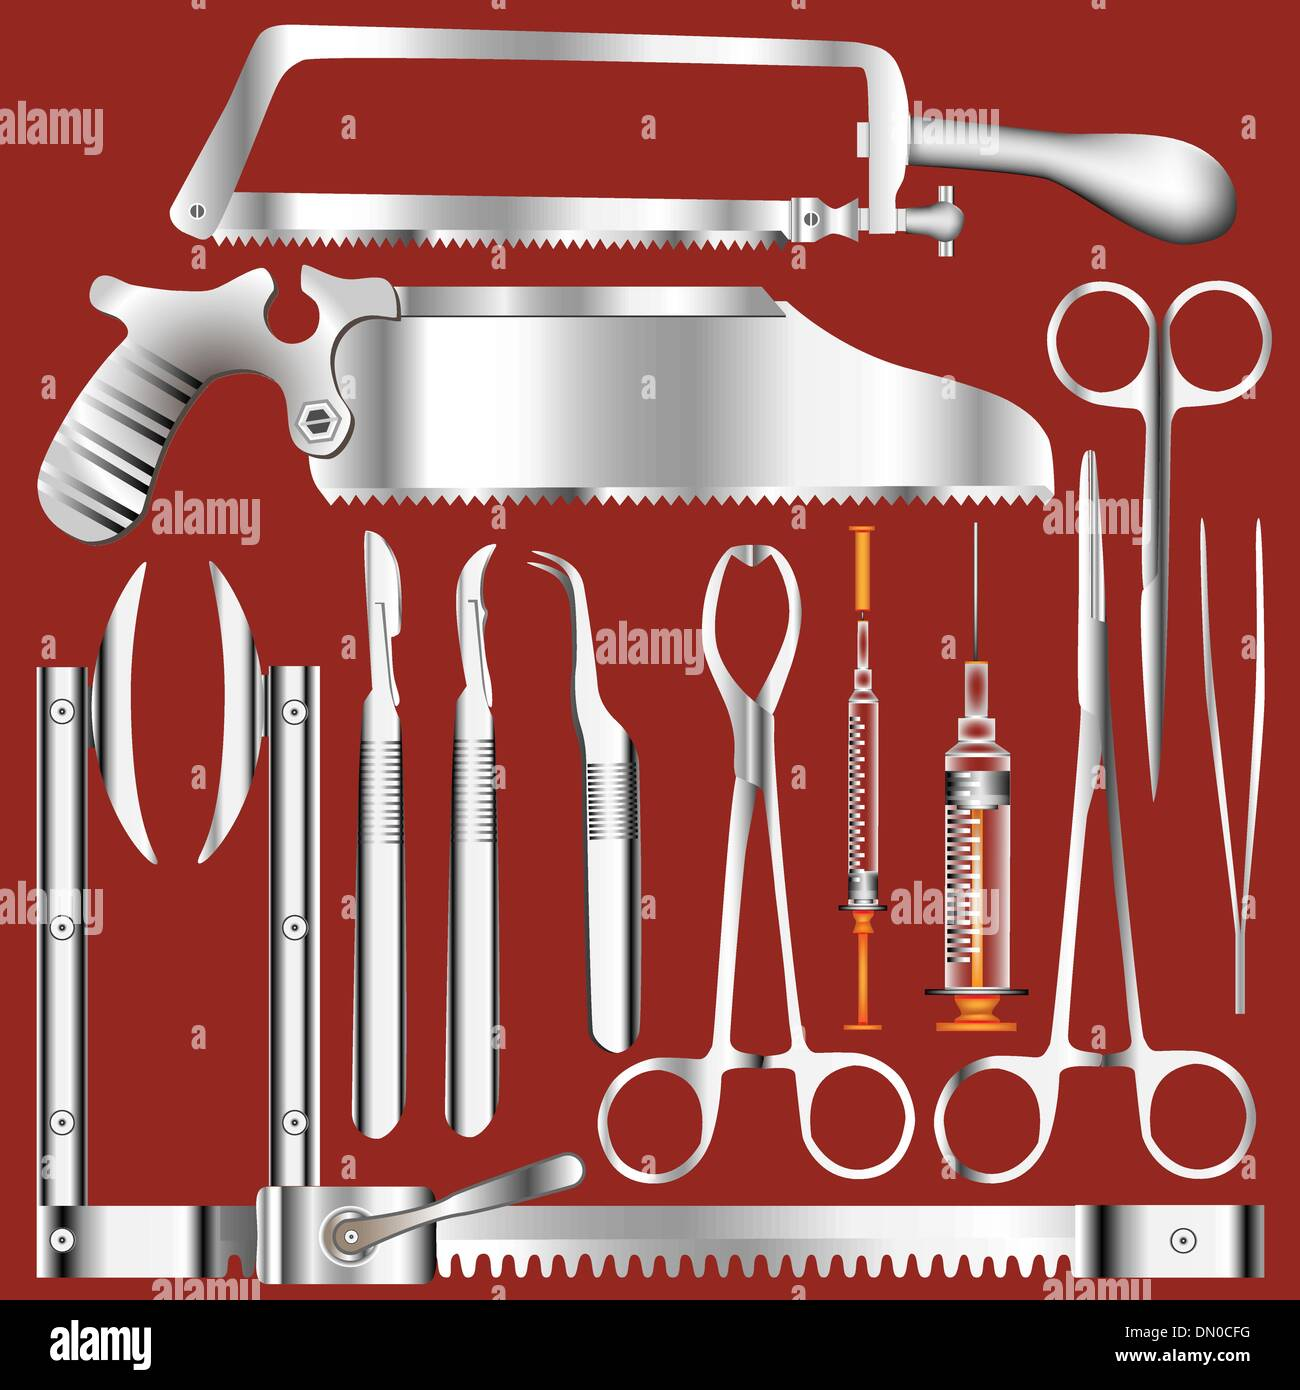 Surgical tools vector - Stock Image